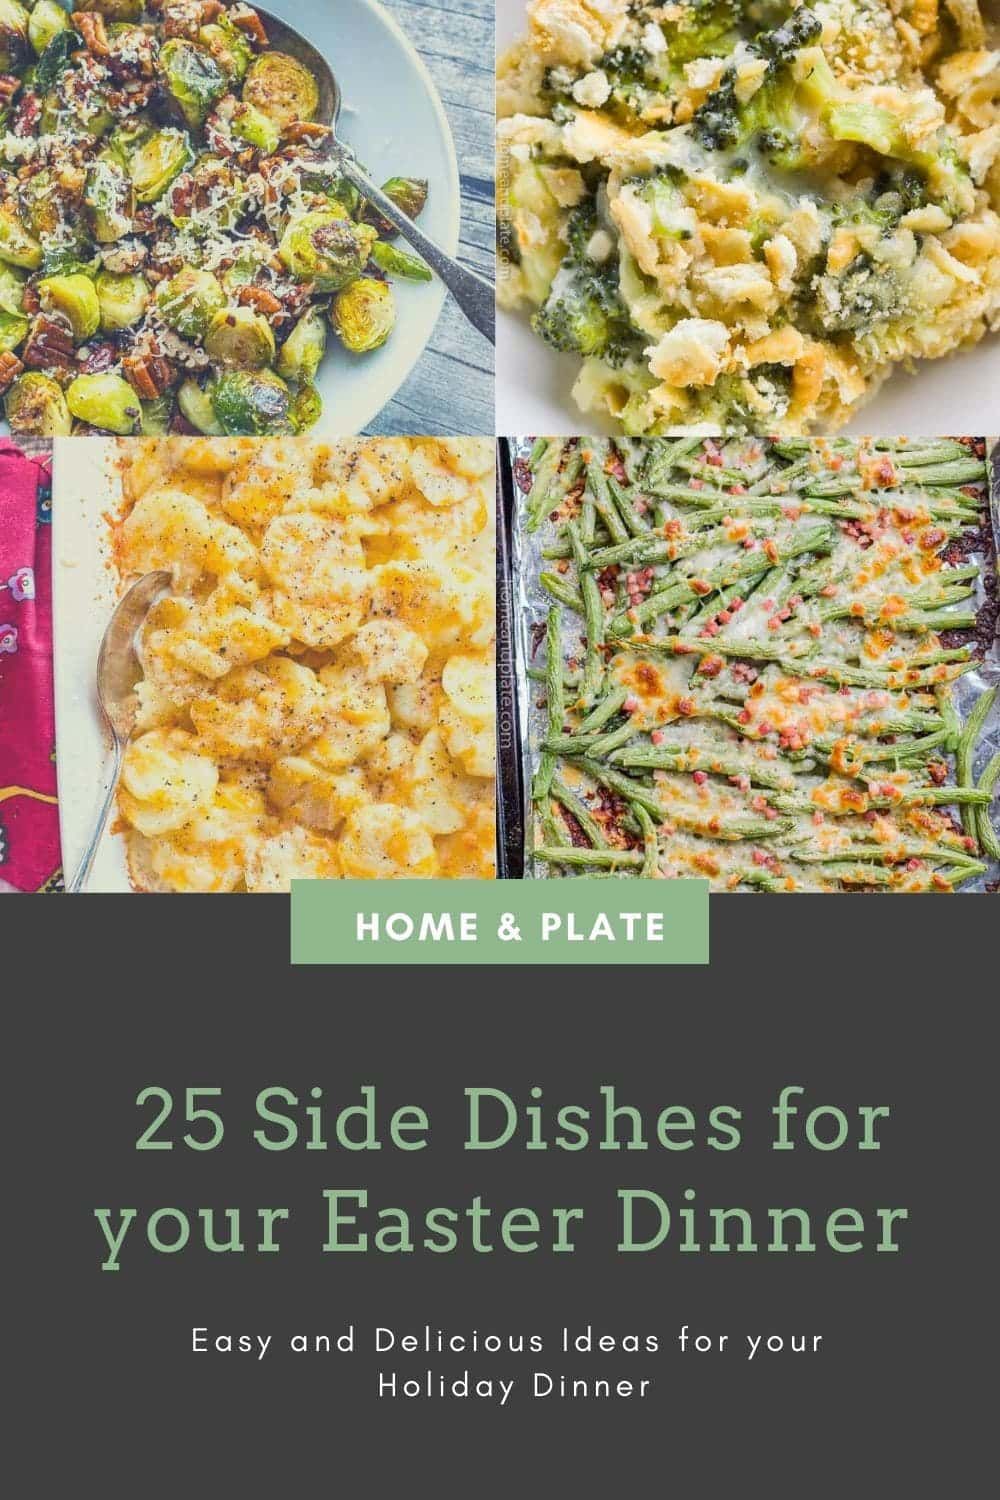 Side Dishes for Easter Dinner (25 Delicious Recipes)